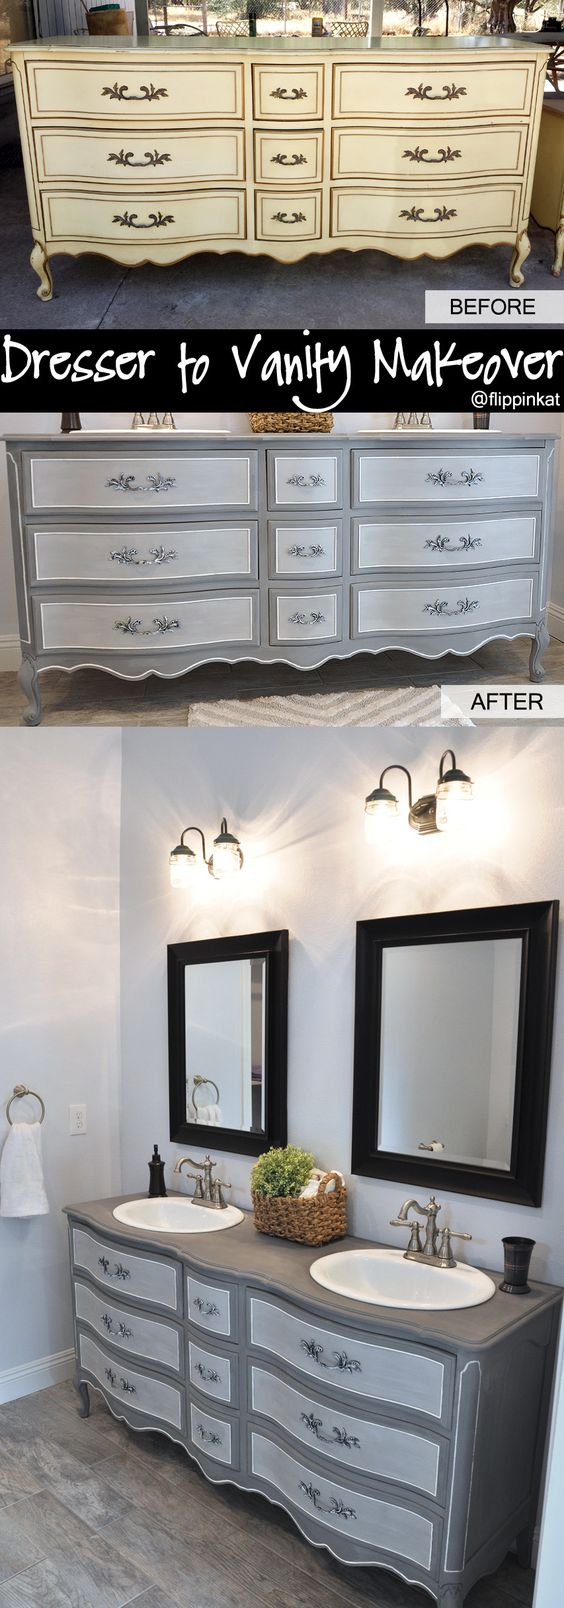 Dresser To Vanity And Bathroom Renovation Got An Old French Provincial Style Dresser Off